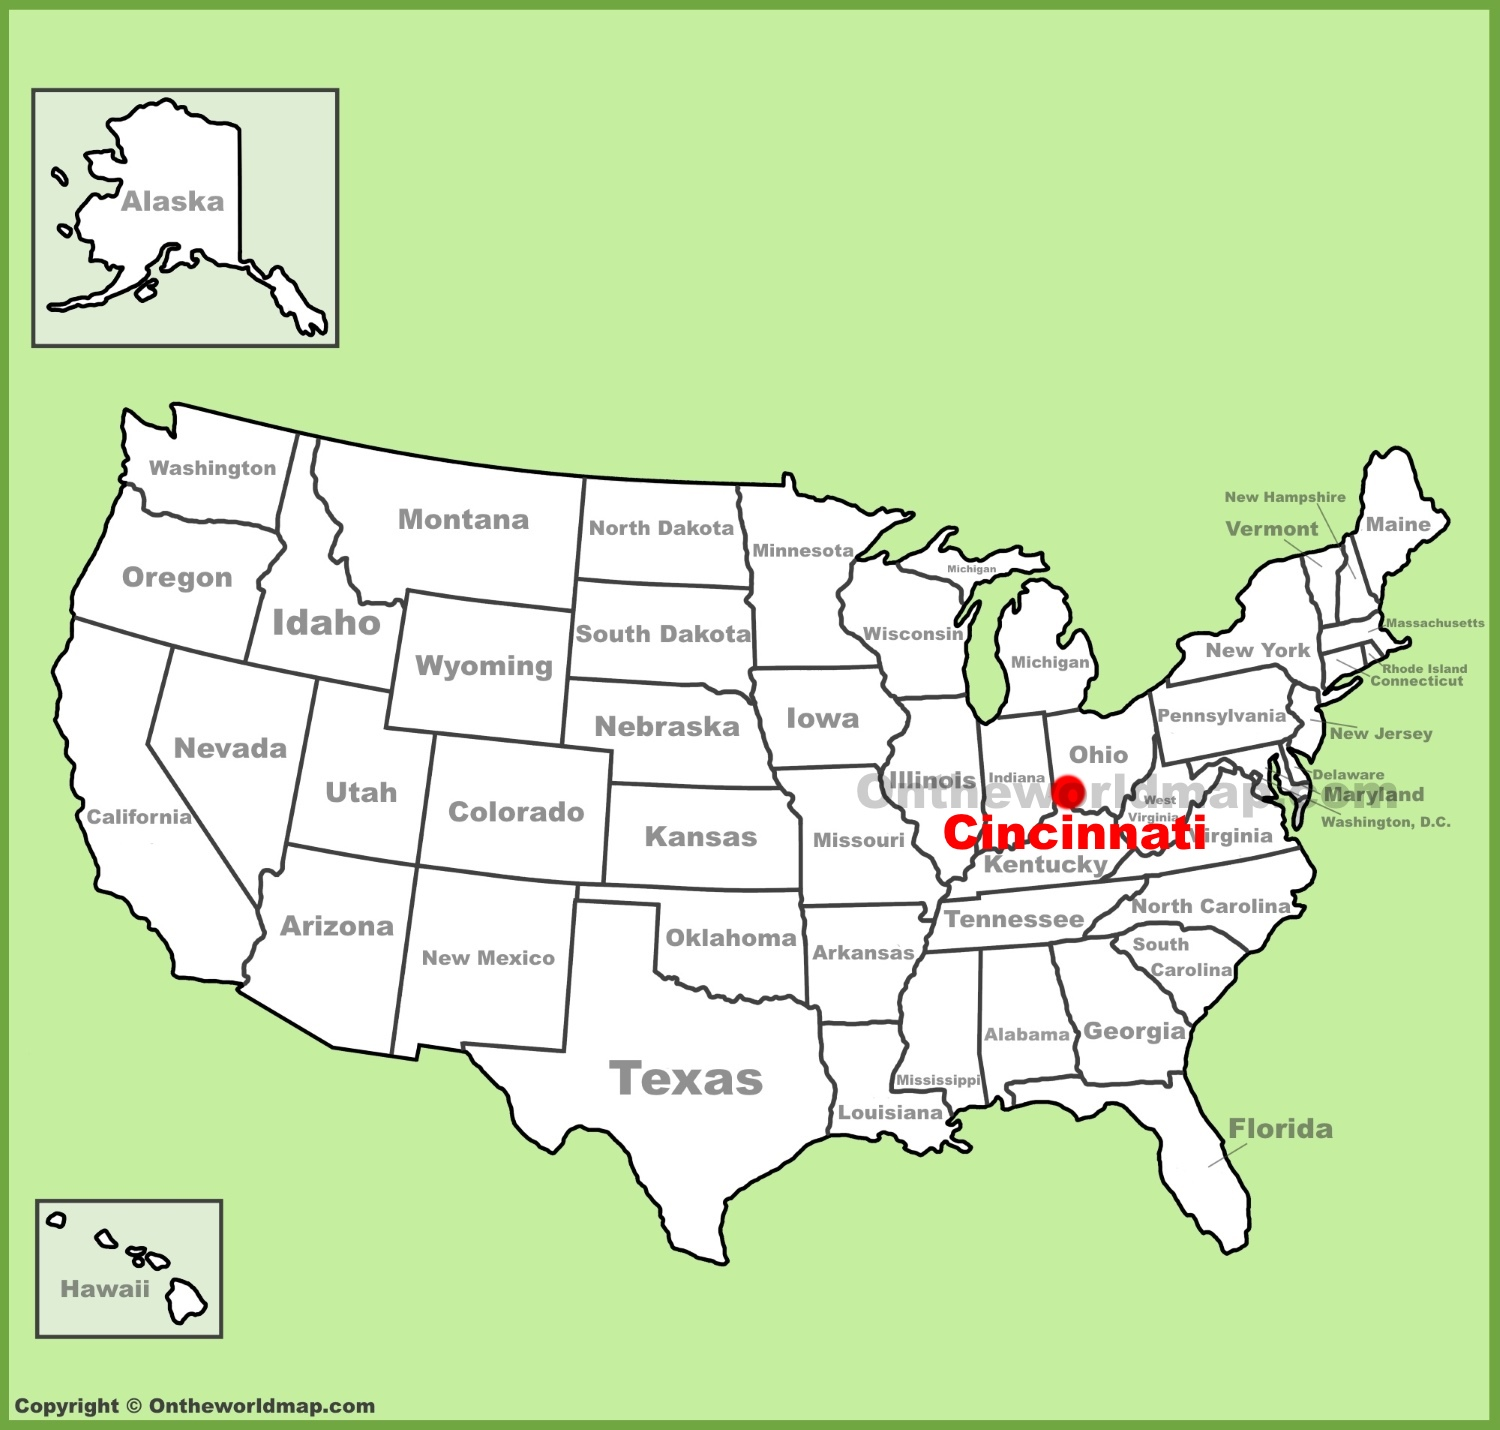 Cincinnati location on the US Map